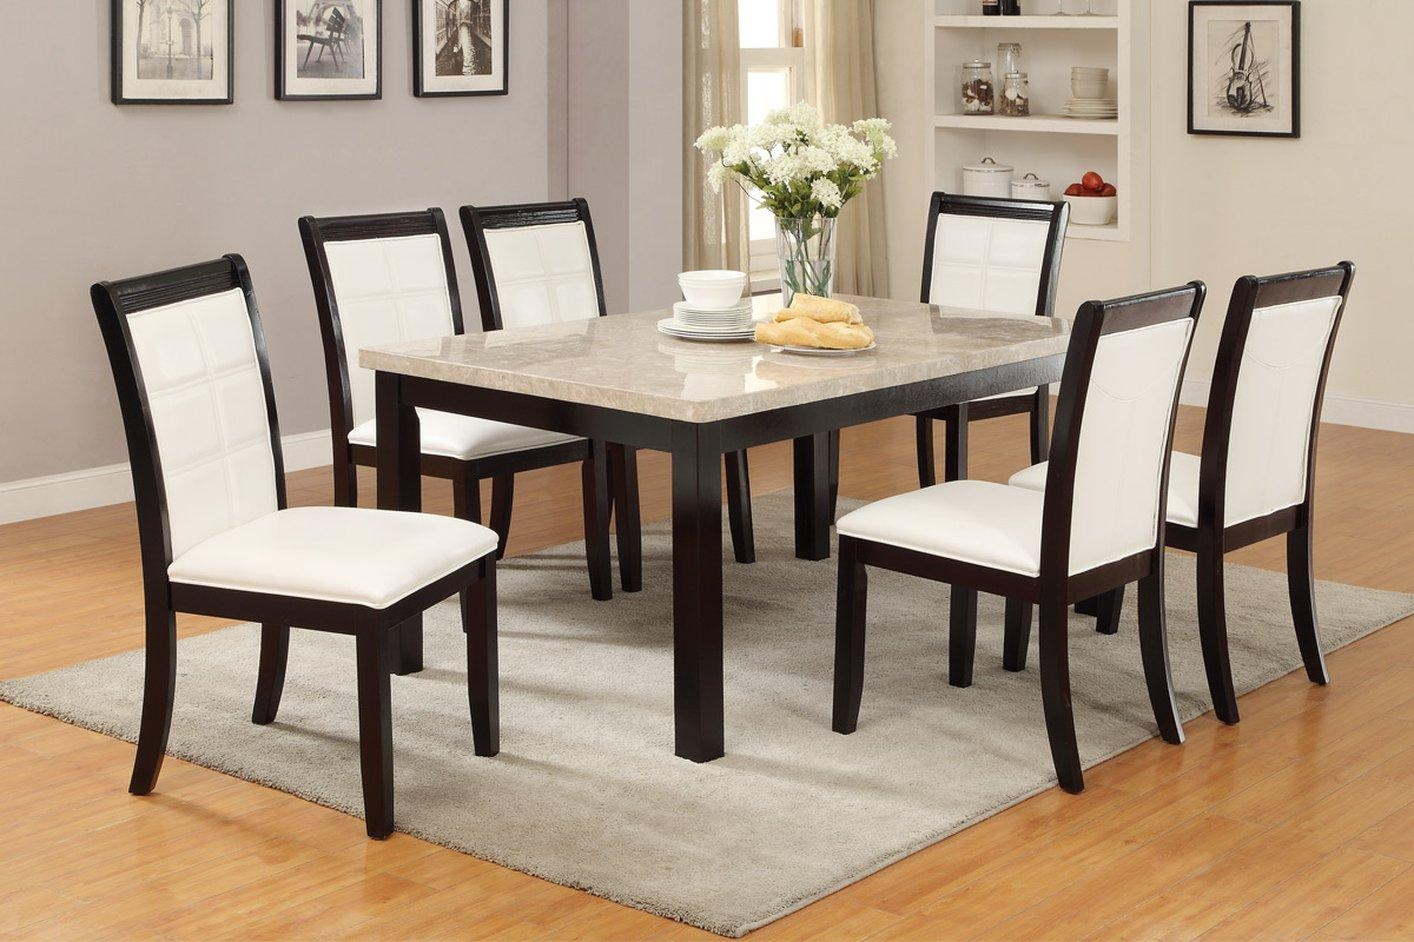 Brown Marble Dining Table – Steal A Sofa Furniture Outlet Los Inside Dining Table With Sofa Chairs (View 14 of 20)